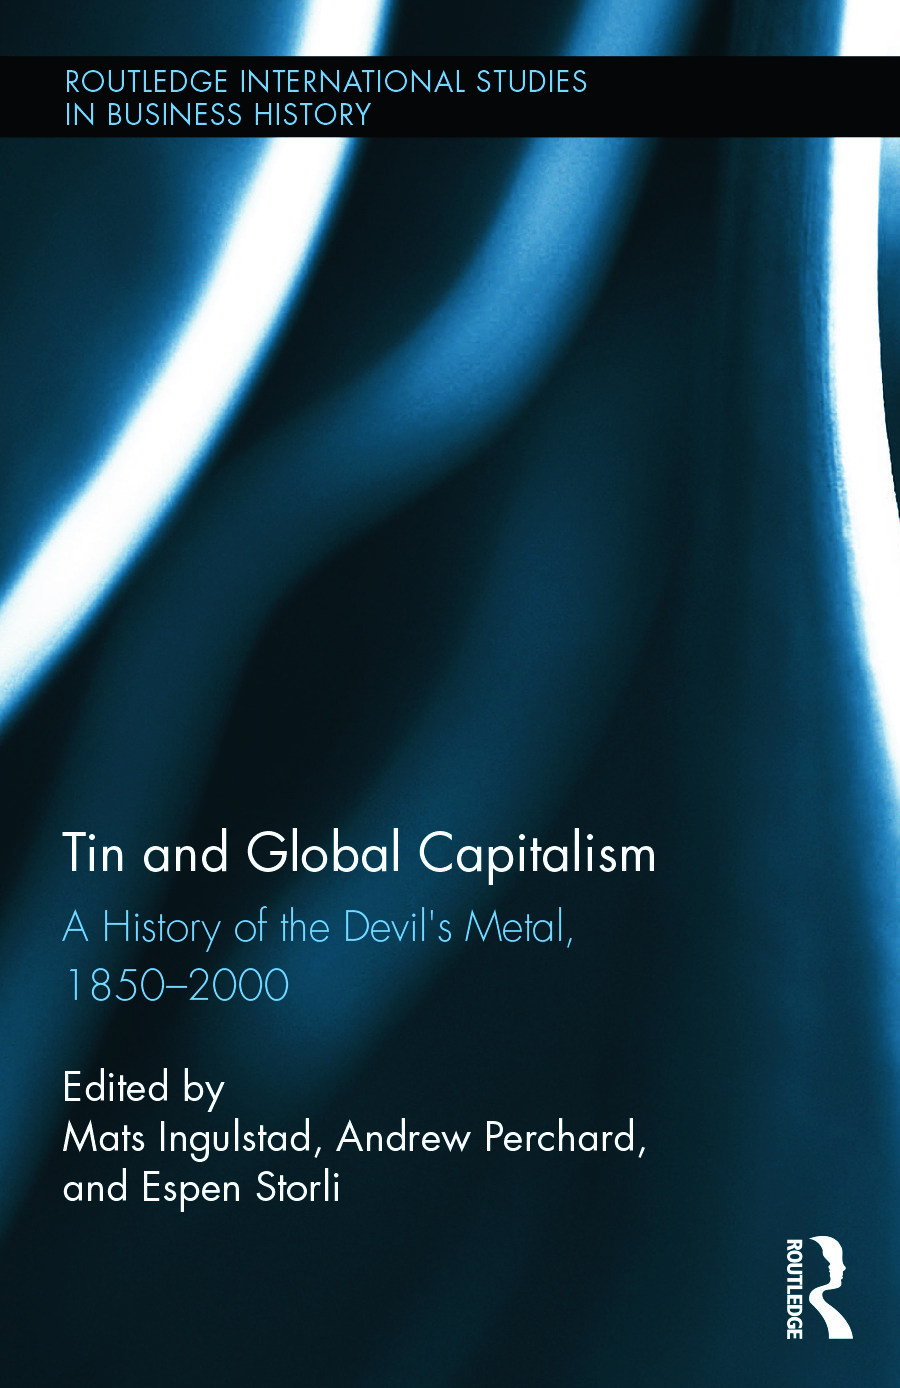 Tin and Global Capitalism, 1850-2000: A History of